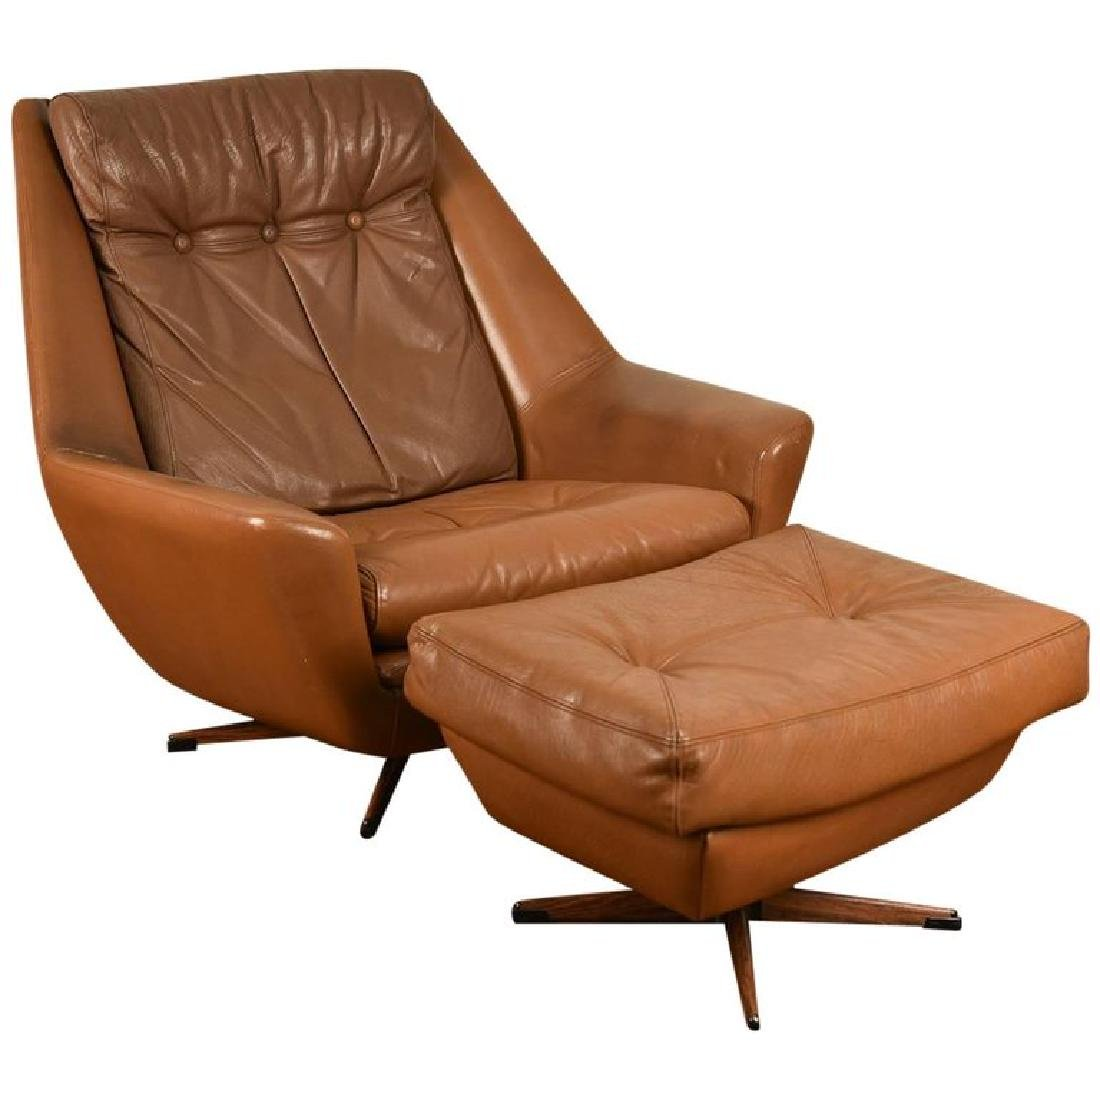 DANISH MID-CENTURY LEATHER LOUNGE CHAIR & OTTOMAN